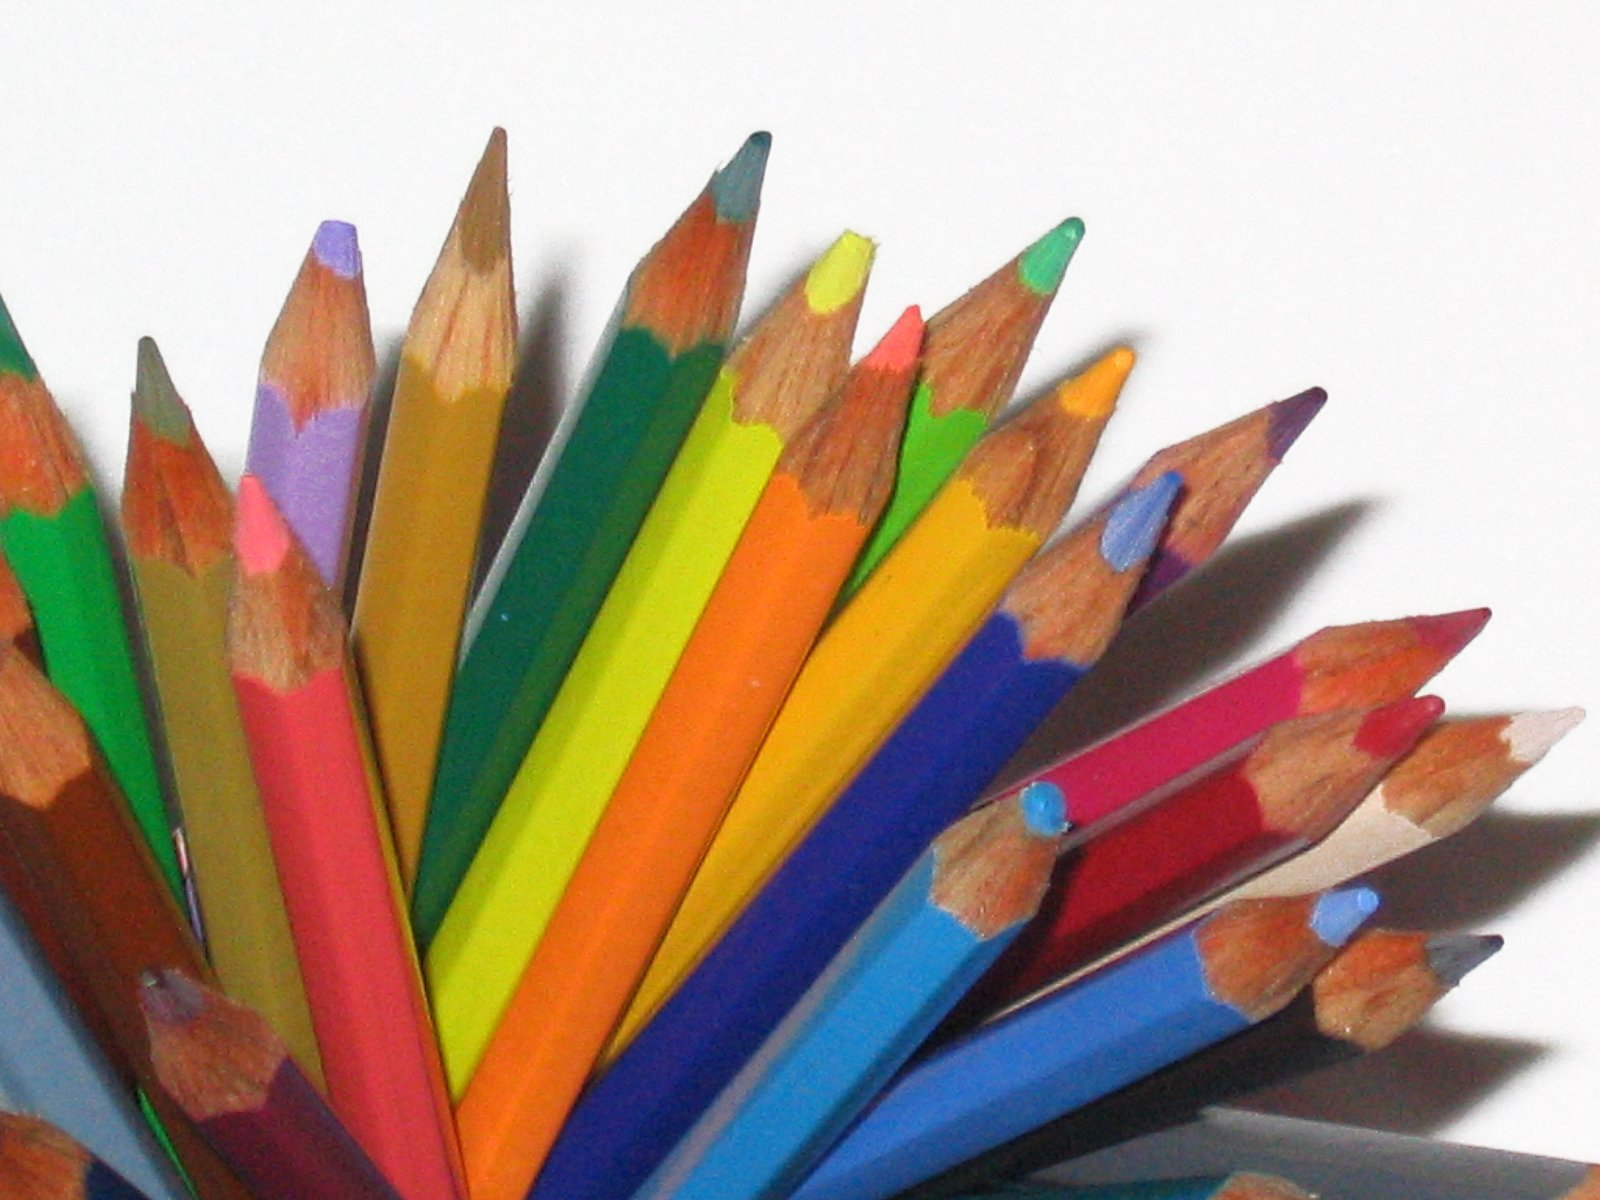 wordpress.colorful-pencil-1424628